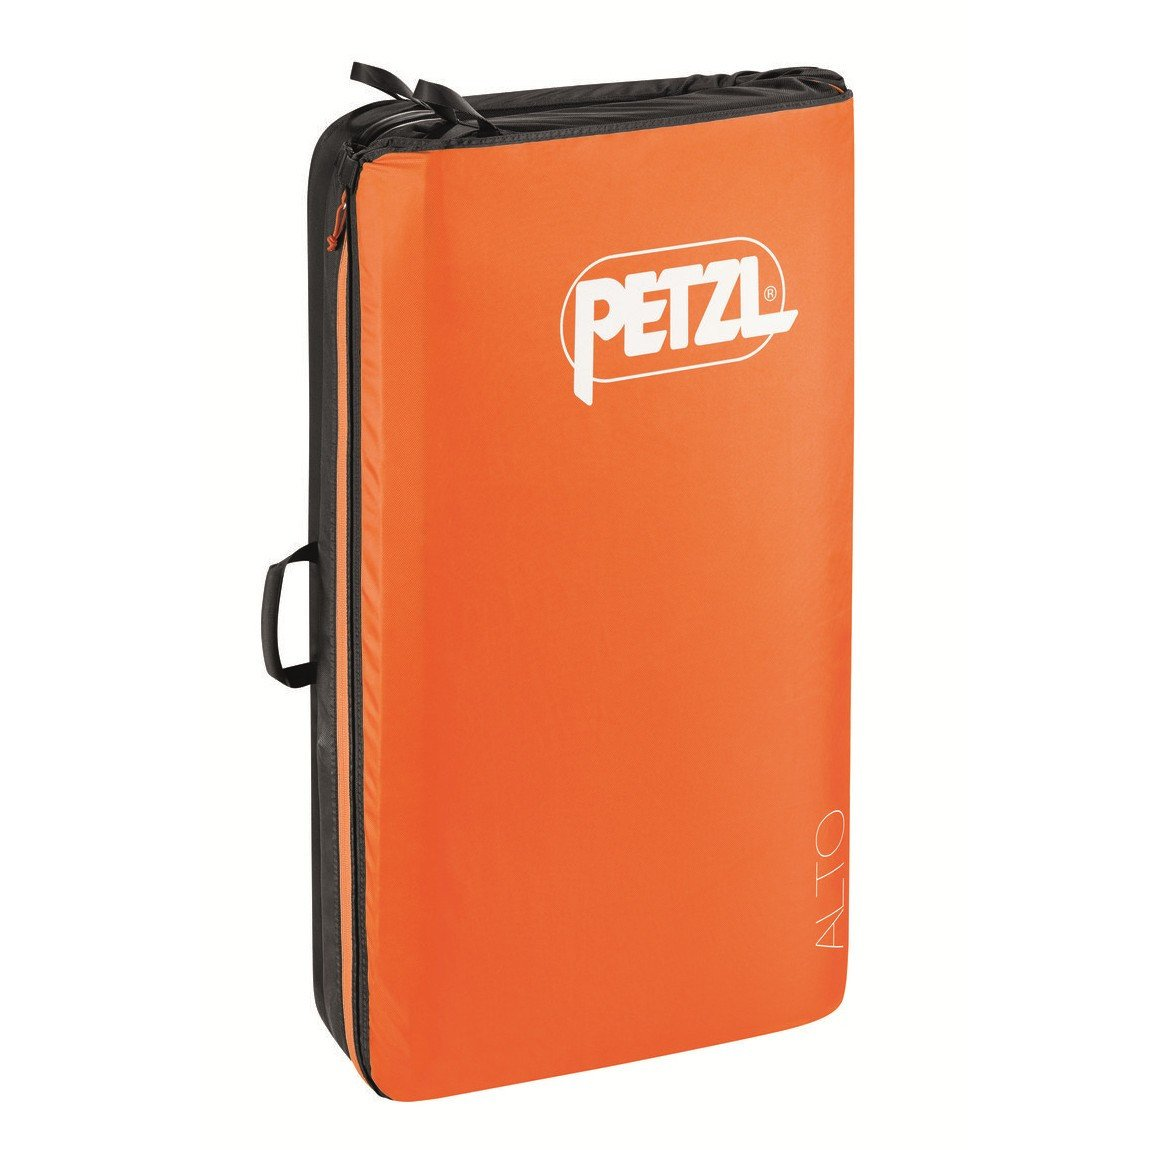 Petzl Alto bouldering crash pad, stood up